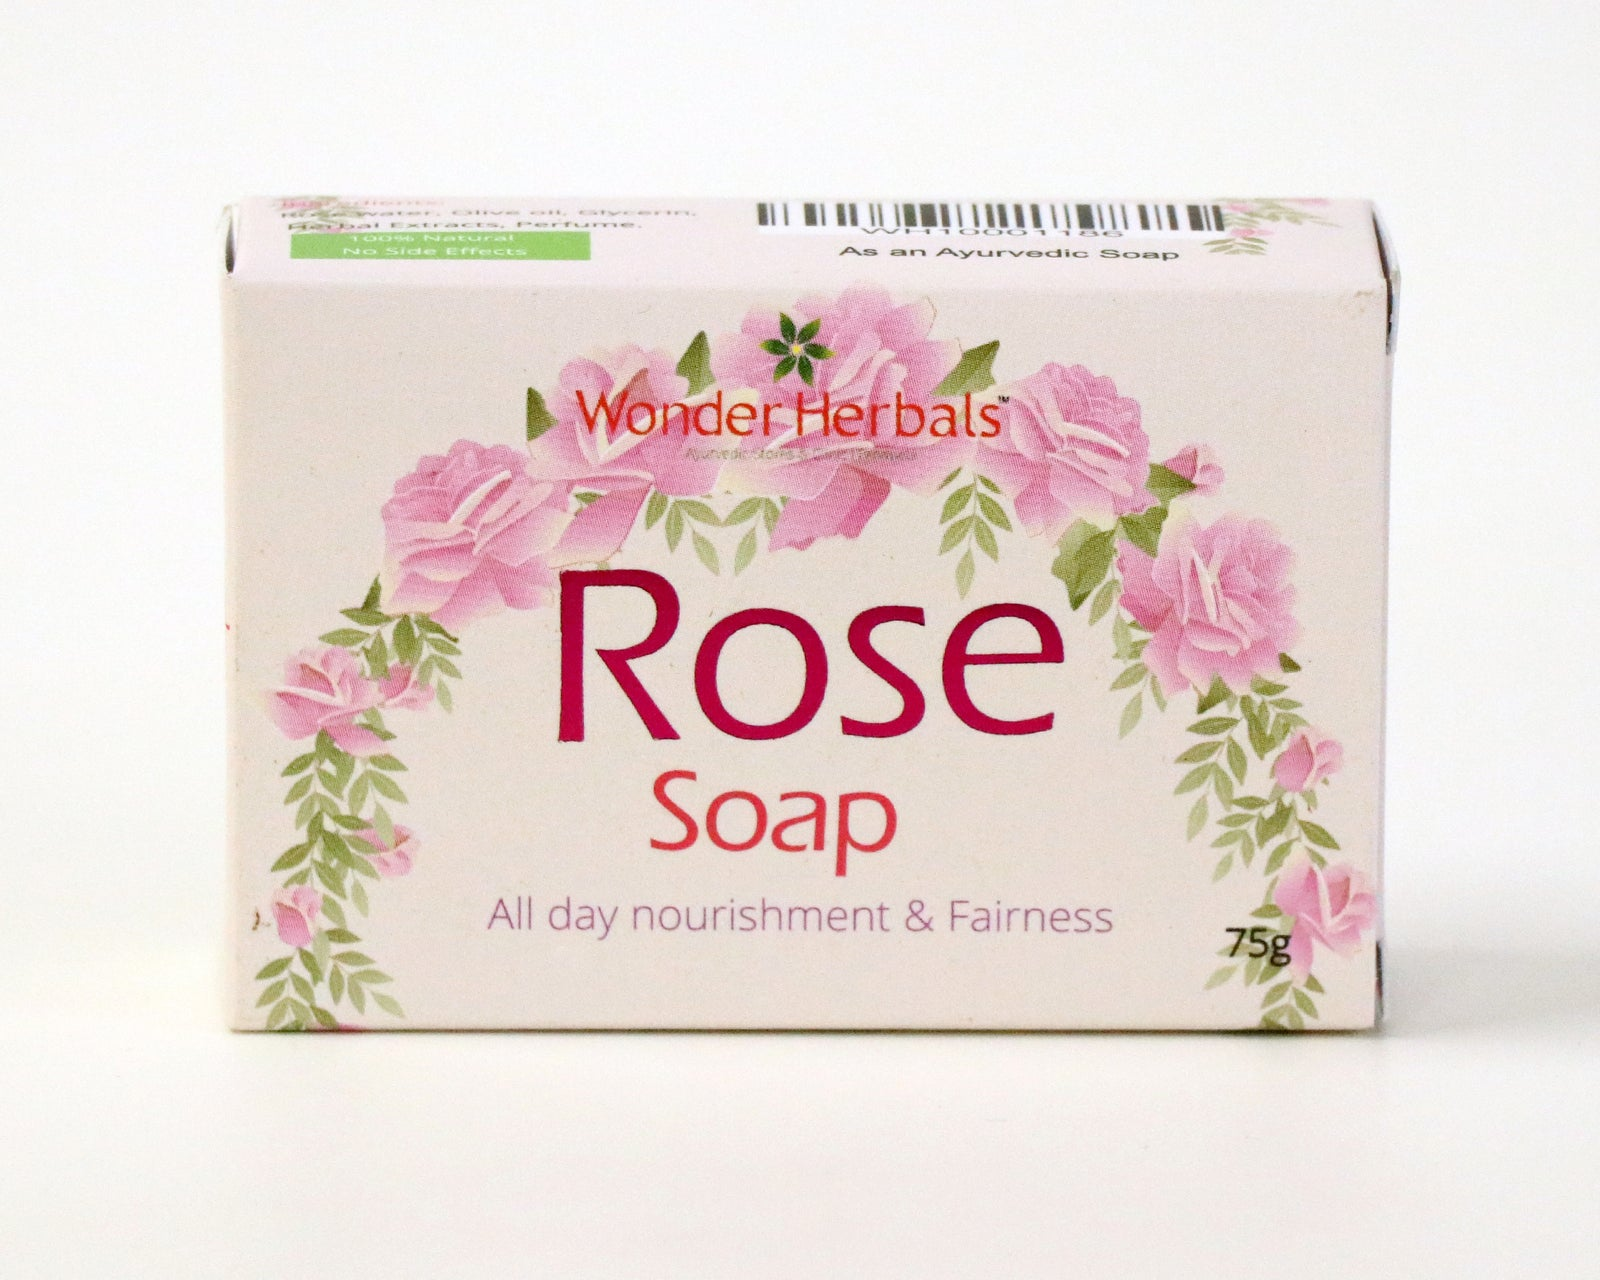 Rose soap - Wonderherbals